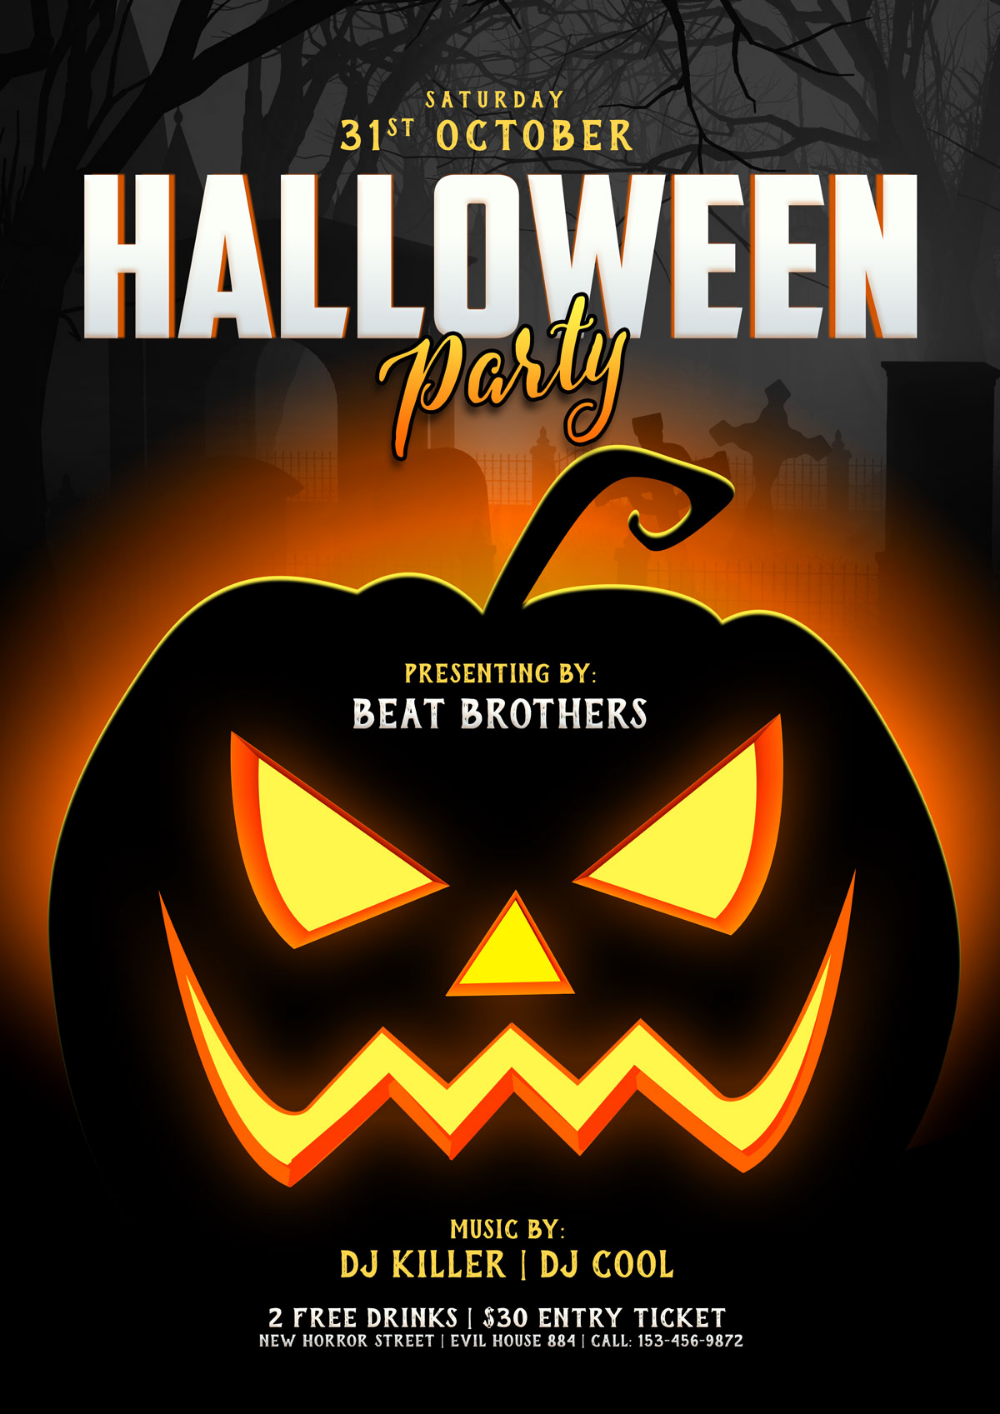 Free Halloween Party Poster / Flyer Design